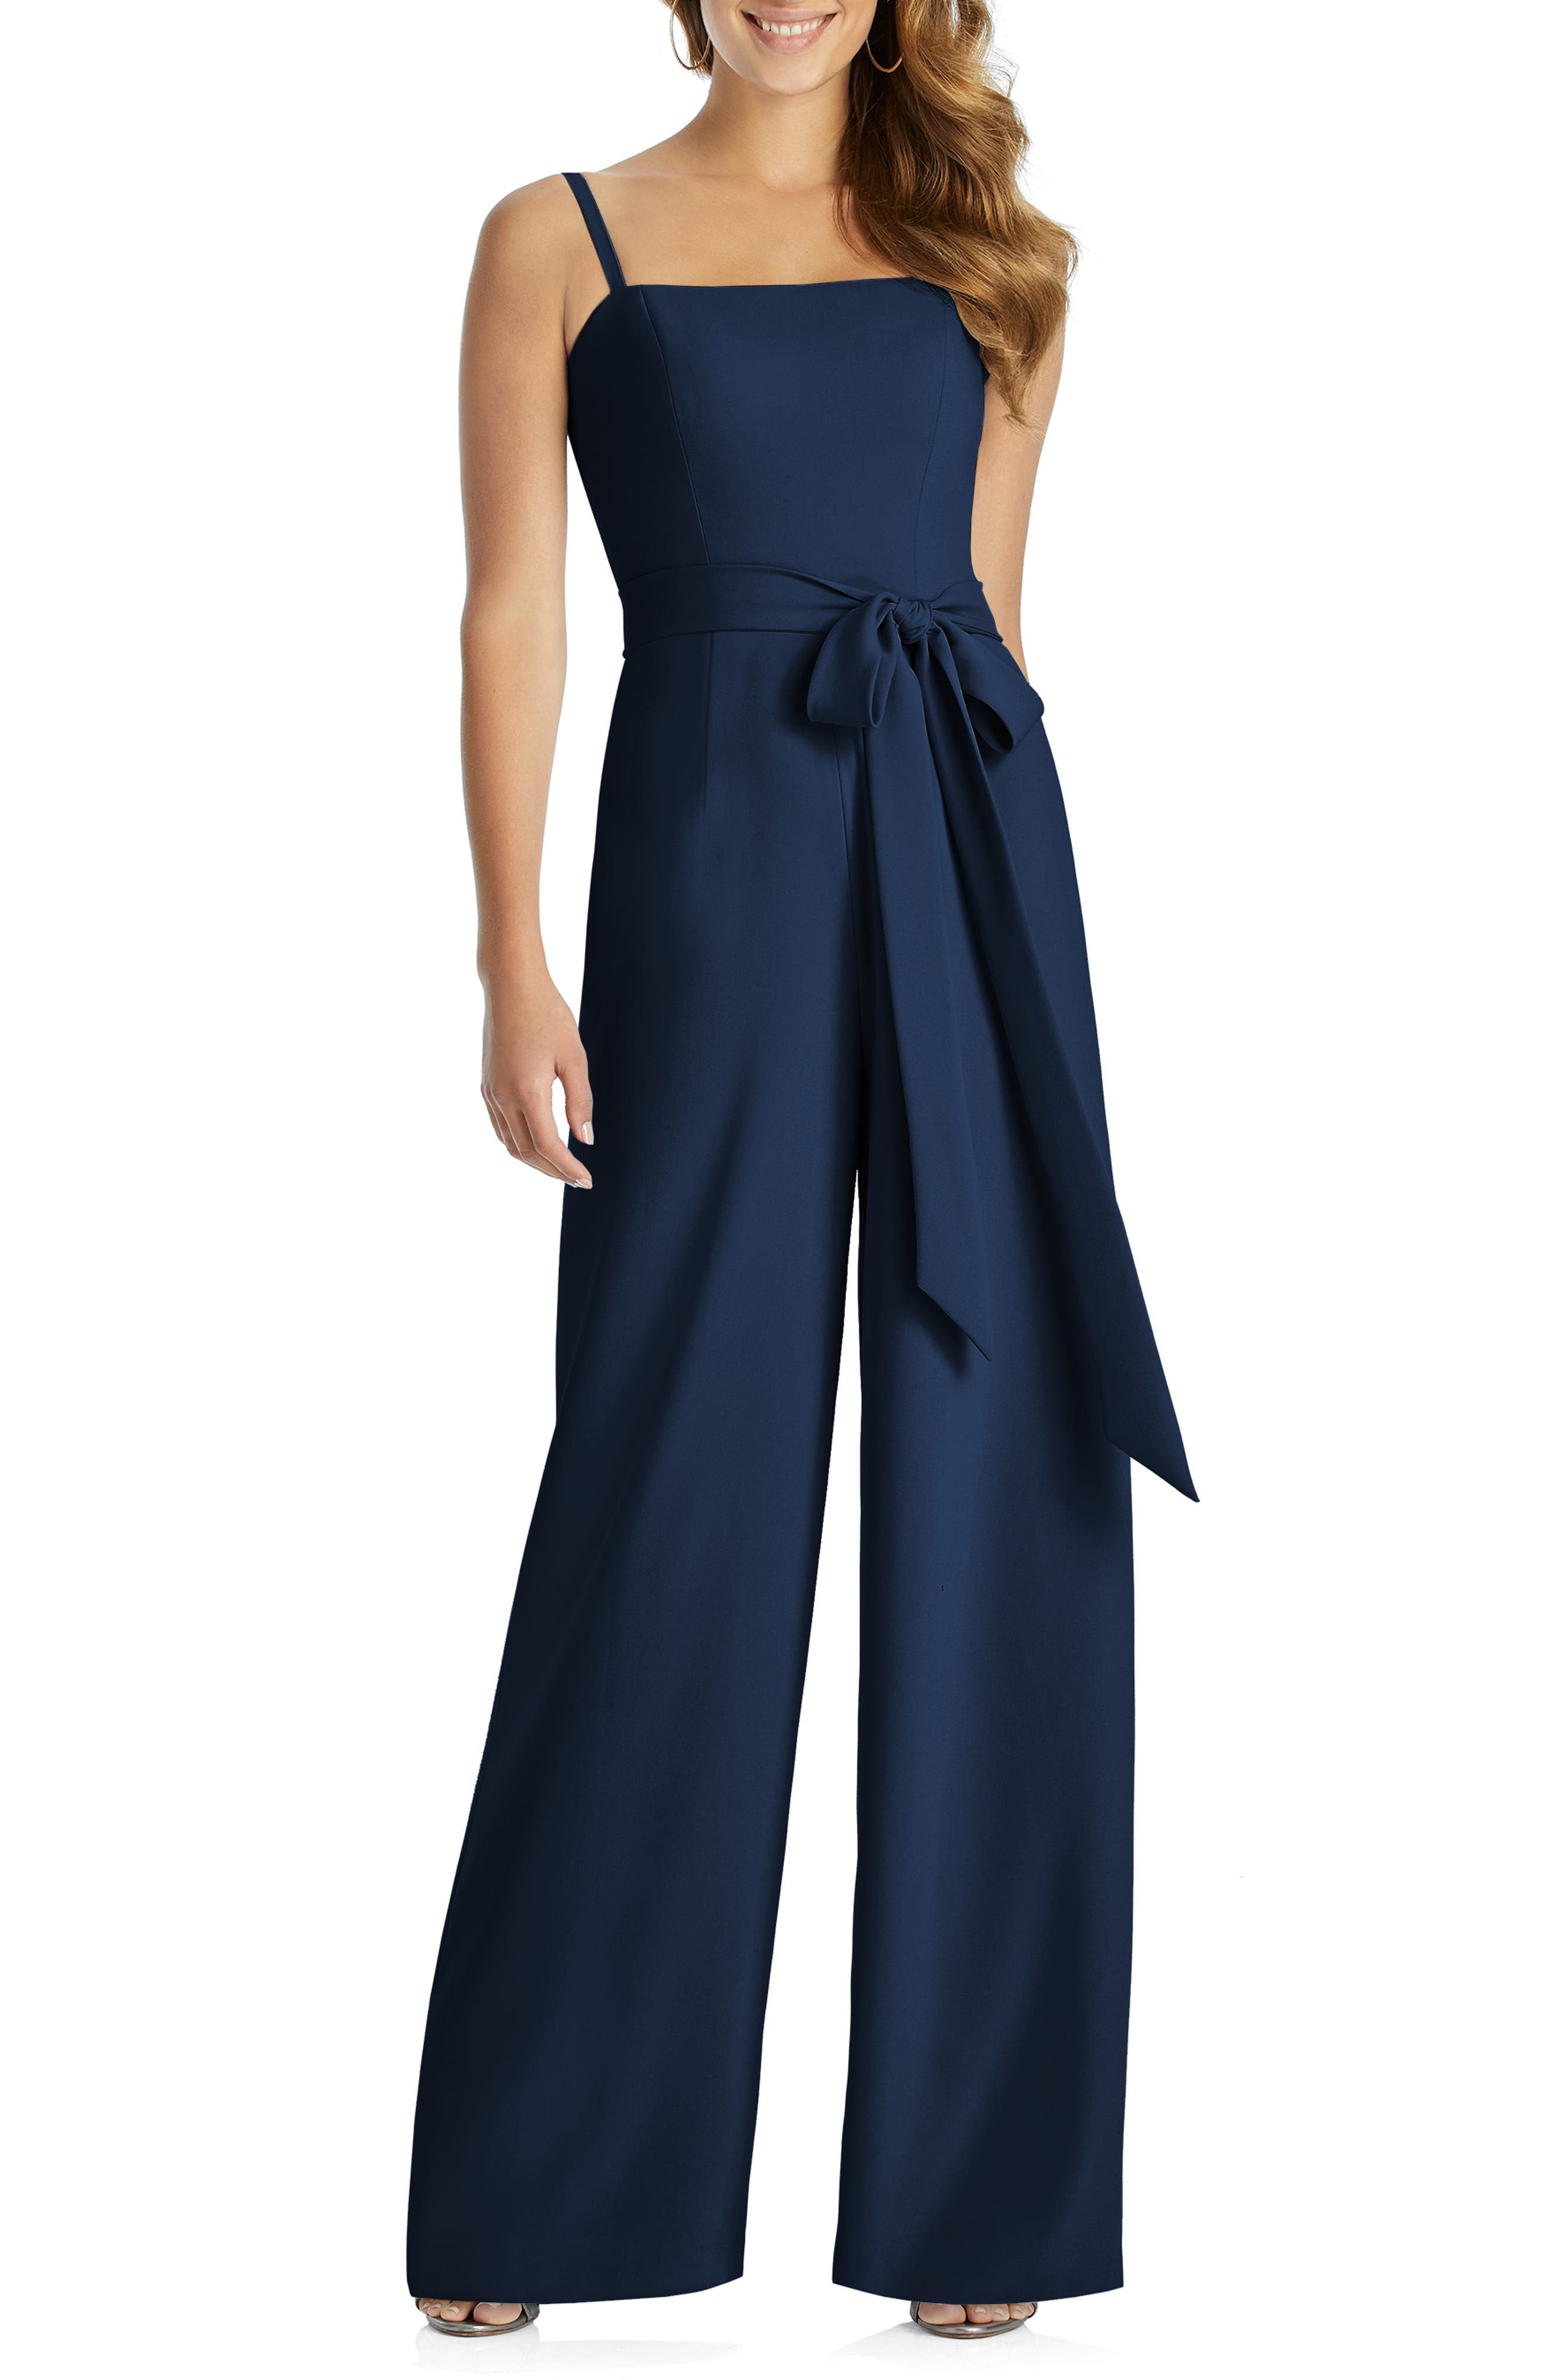 70s Prom, Formal, Evening, Party Dresses Womens Dessy Collection Alana Crepe Jumpsuit $263.00 AT vintagedancer.com